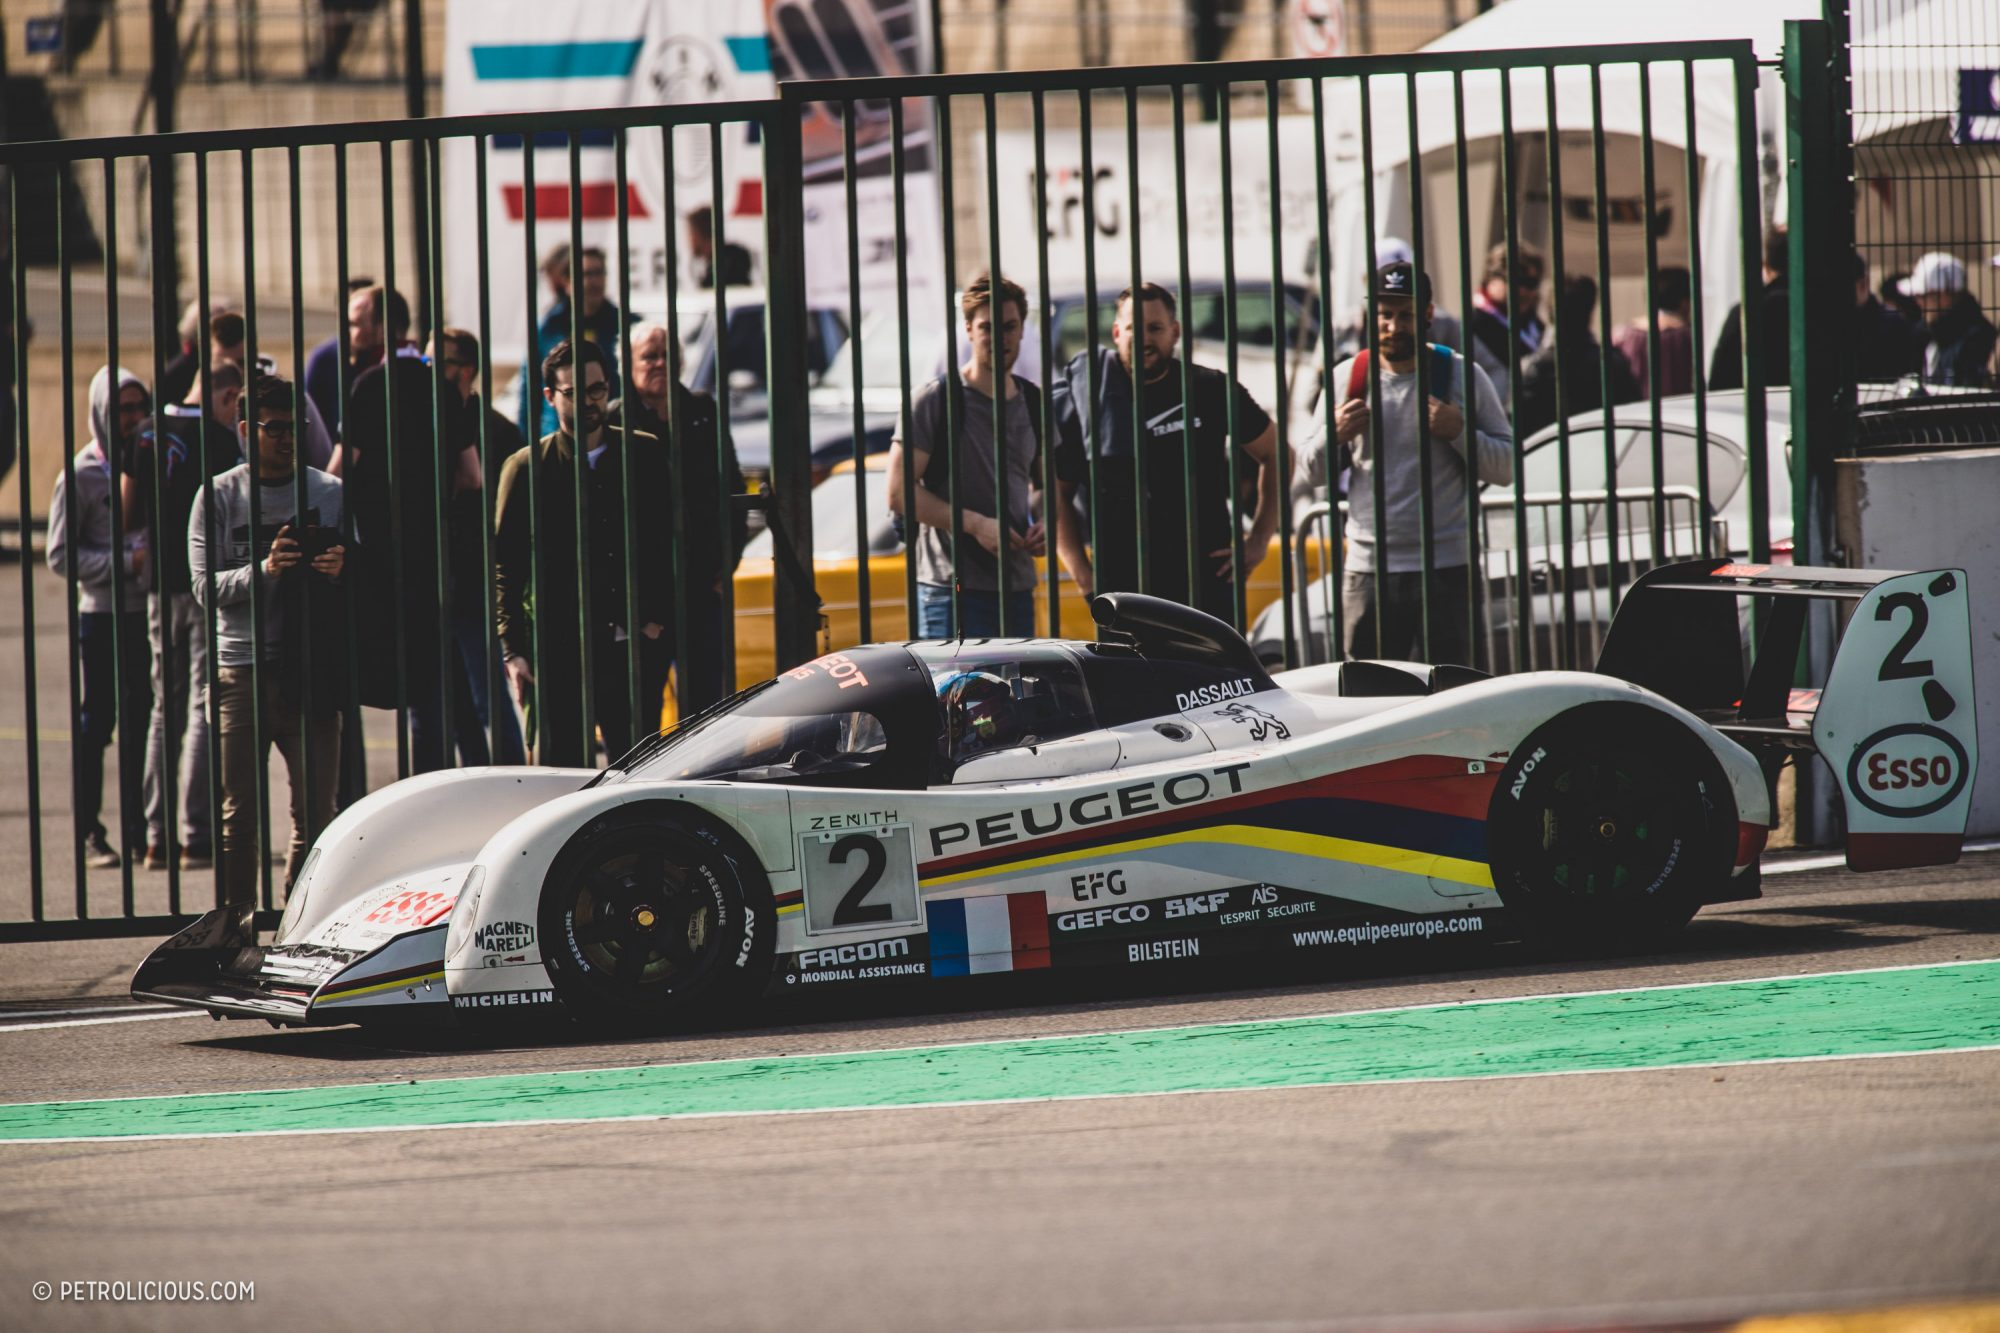 The Peugeot 905 Evolved Into A Two-Time Le Mans Winner ...